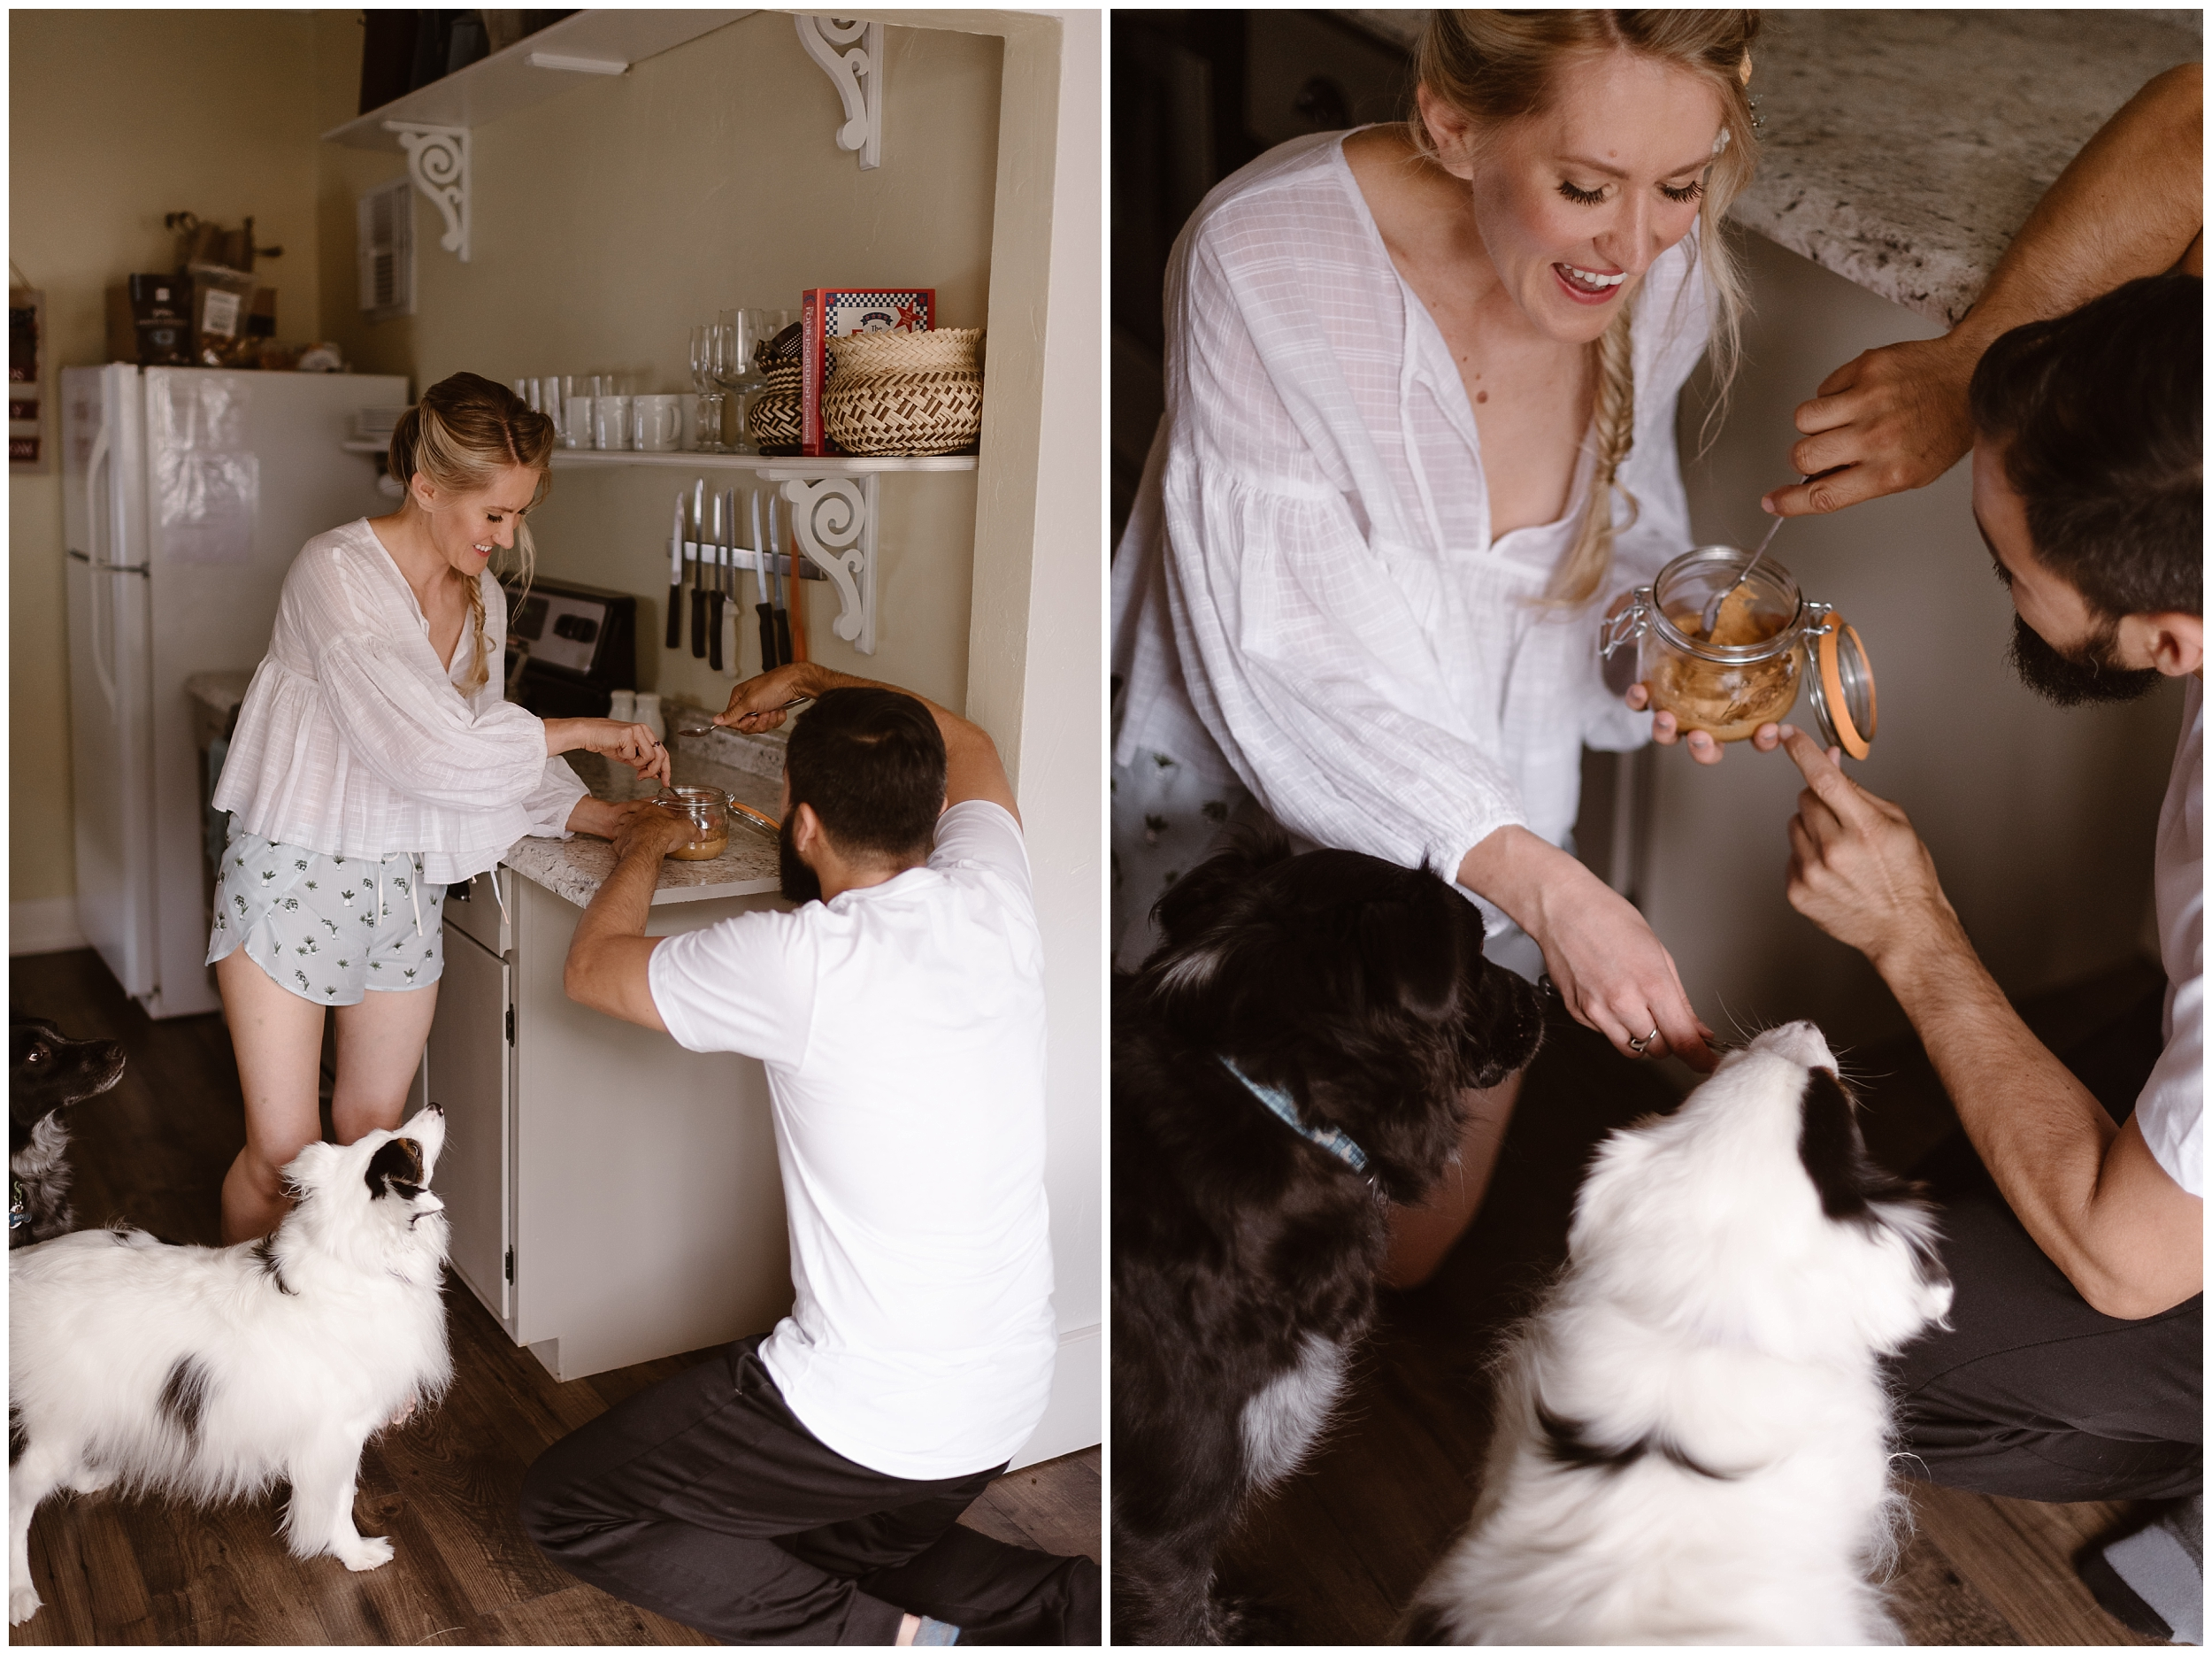 In these side-by-side elopement photos, a couple scoops peanut butter out of a jar to feed to their pups before their elopement ceremony—this unique eloping ideas includes your dog in your wedding and allows you have wedding photos with your dogs if you can't bring them to your ceremony.